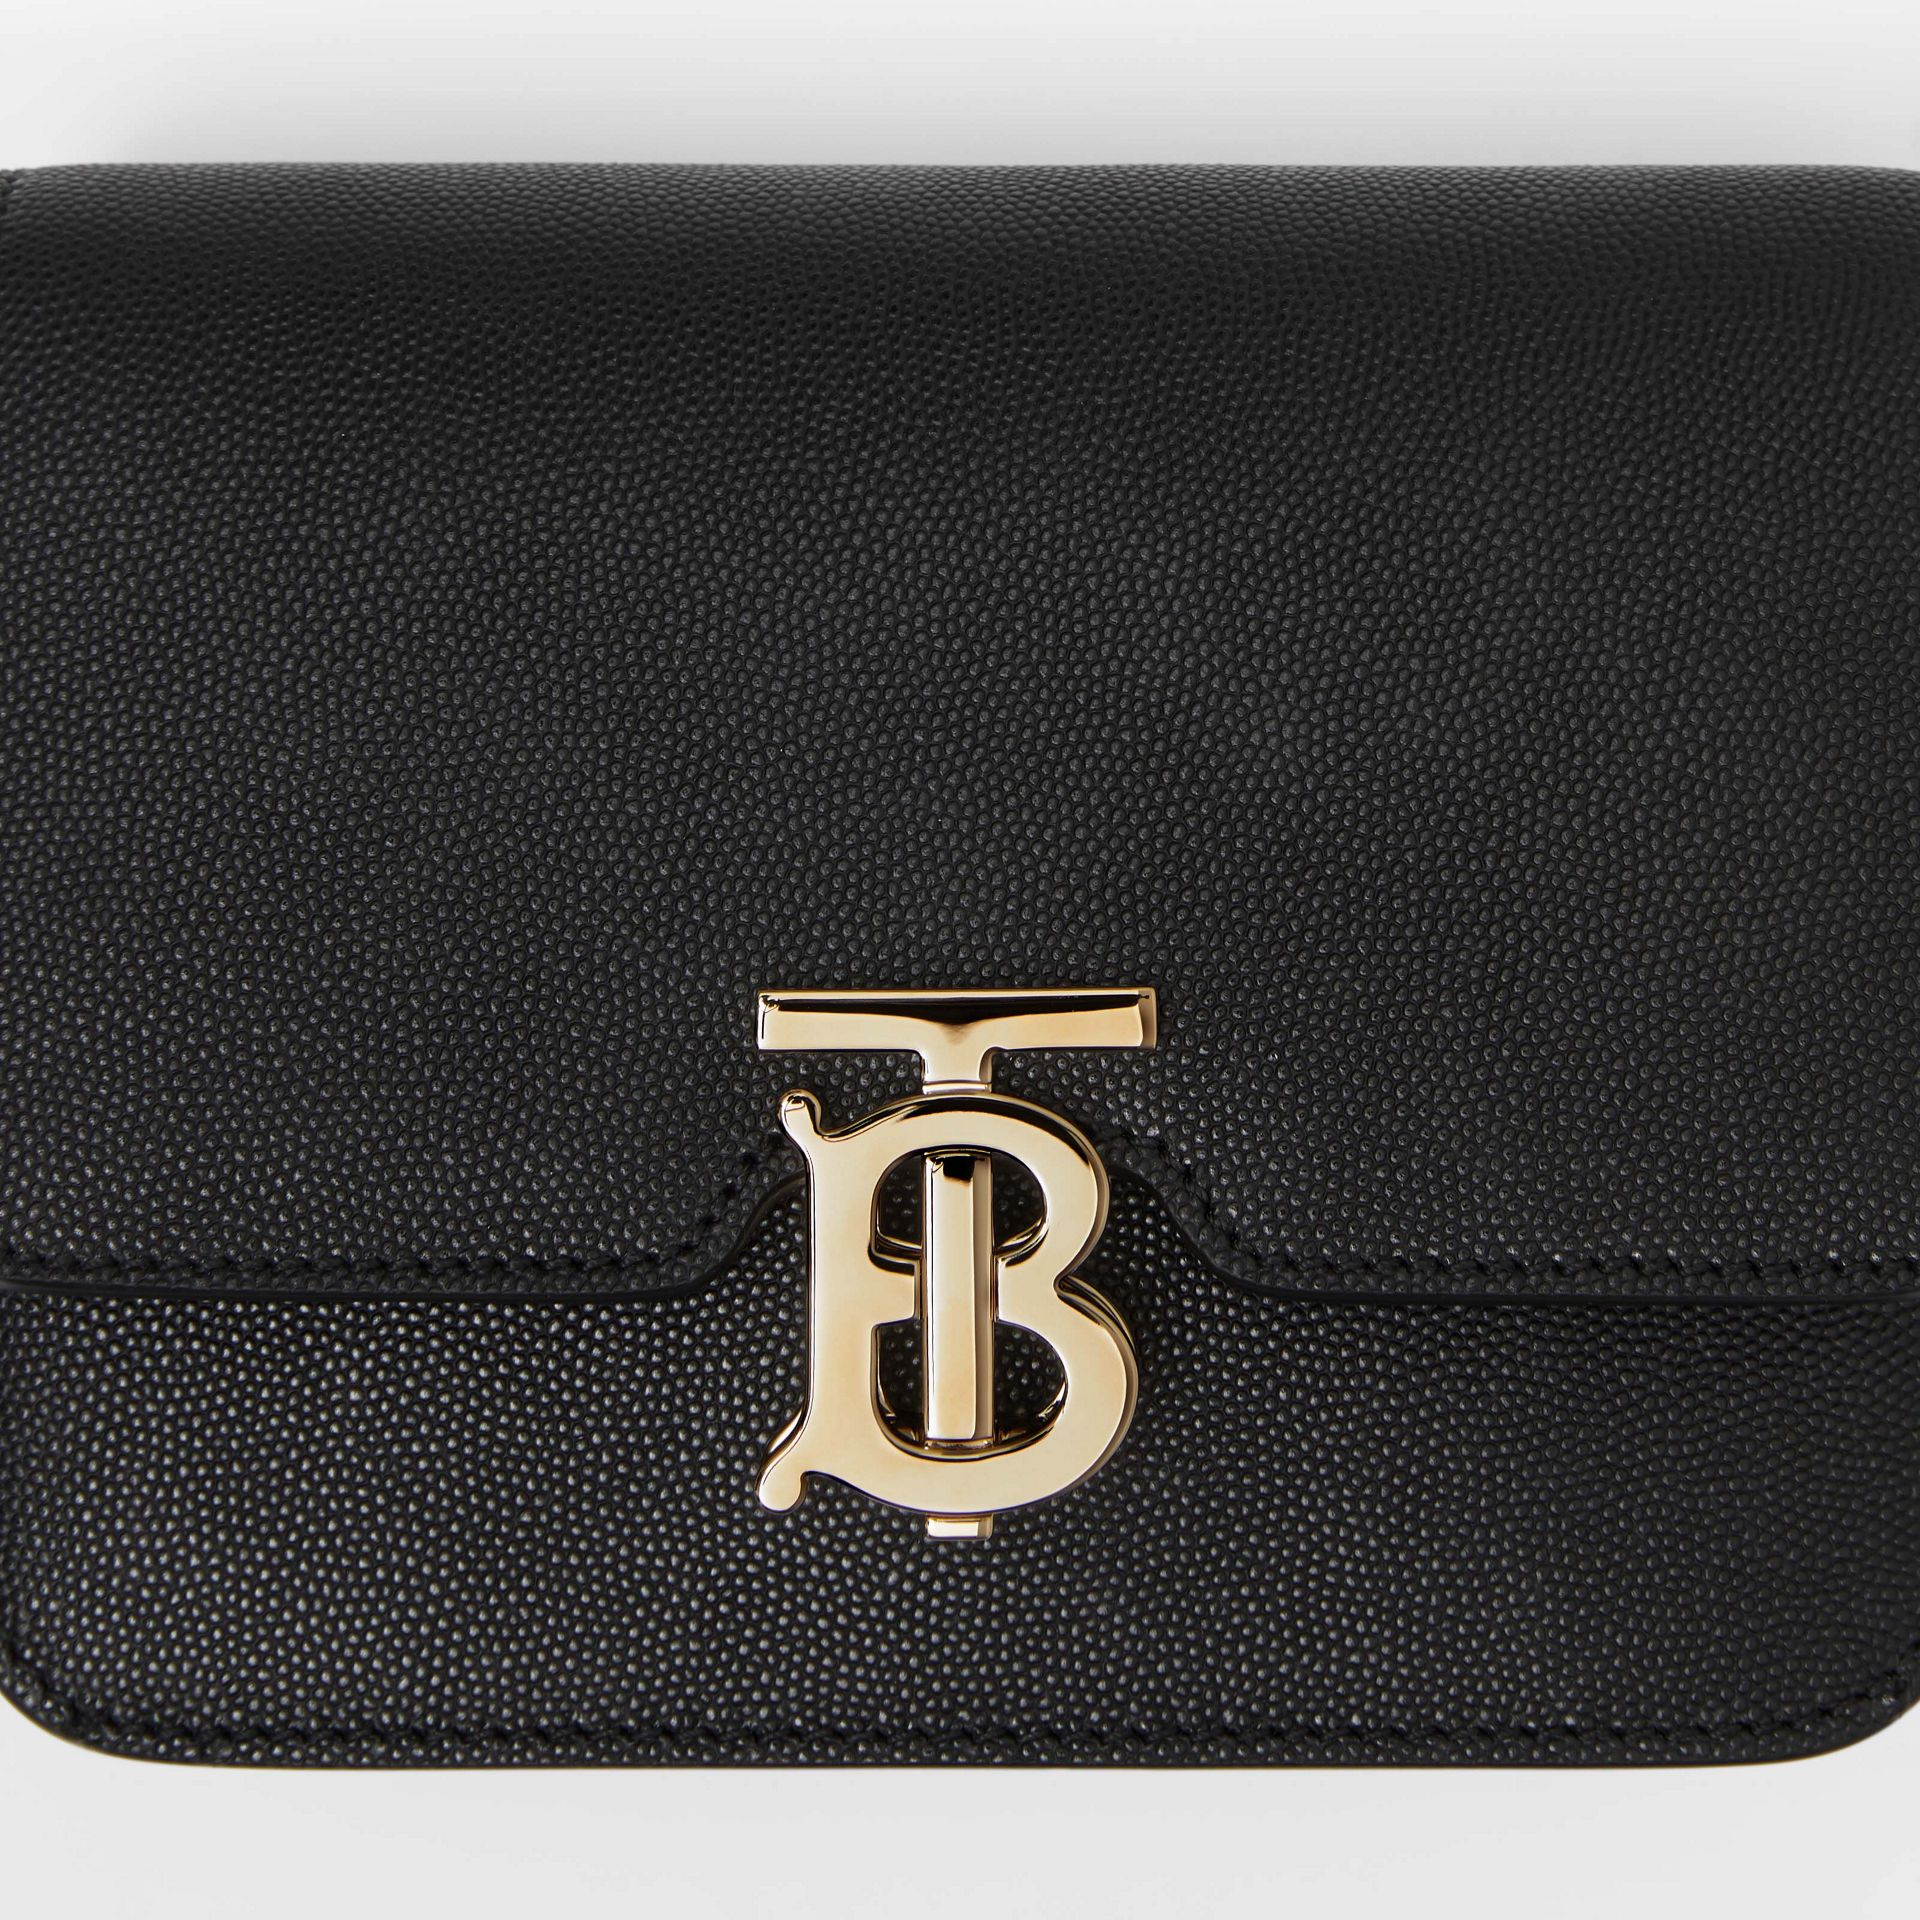 Mini Grainy Leather TB Bag in Black - Women | Burberry - gallery image 1